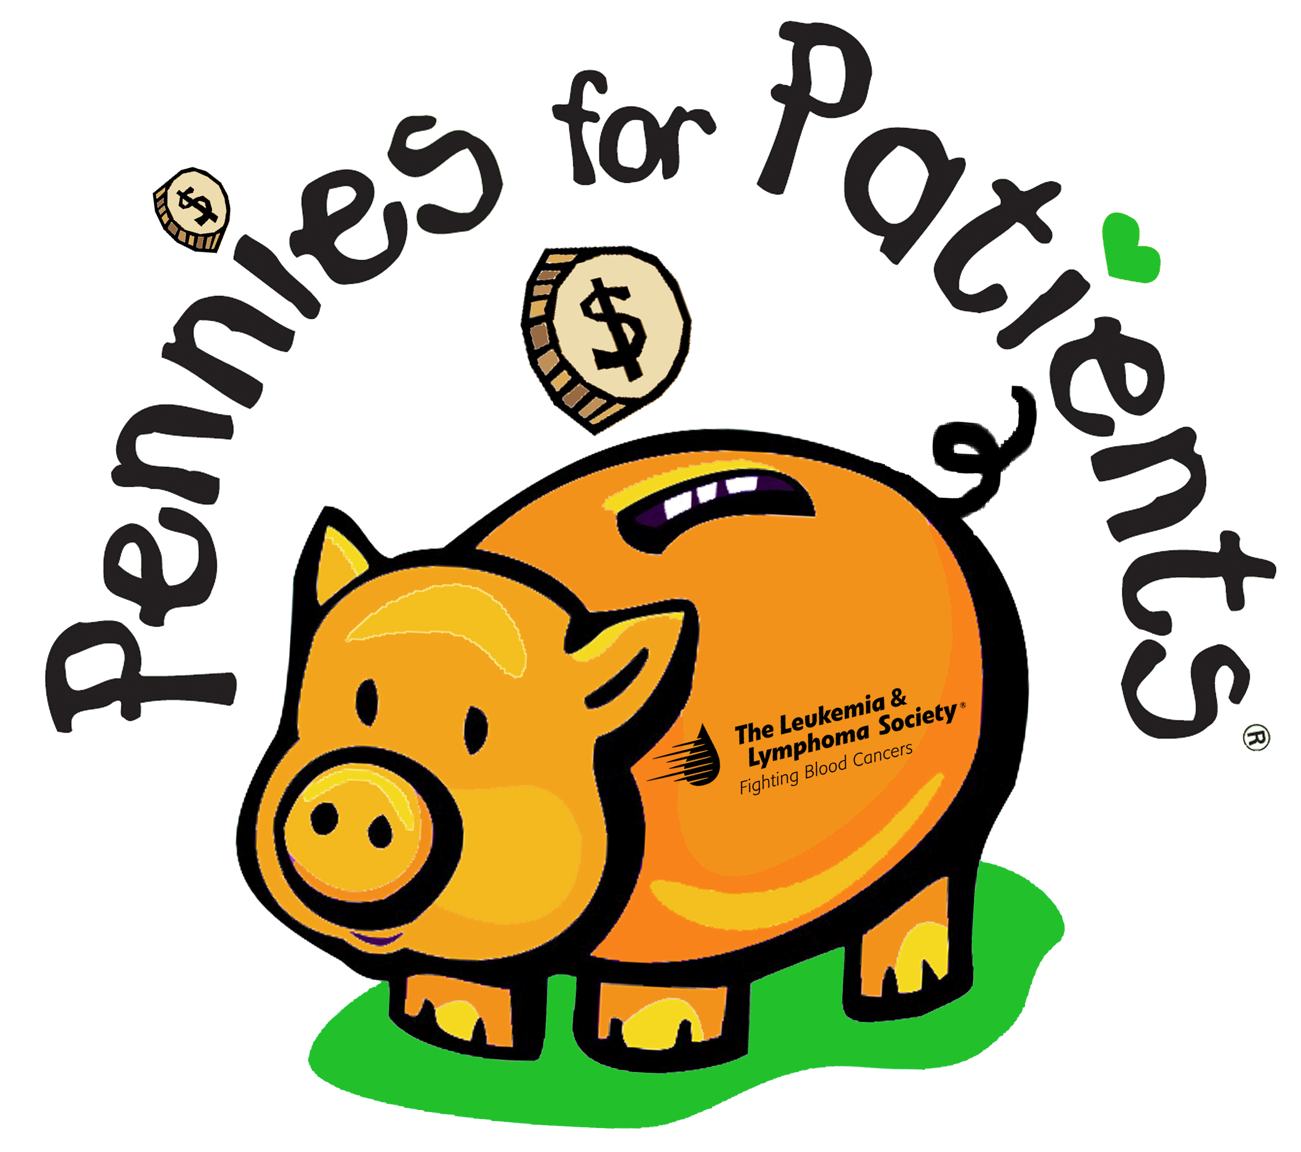 What is your favorite Pennies for Patients event?